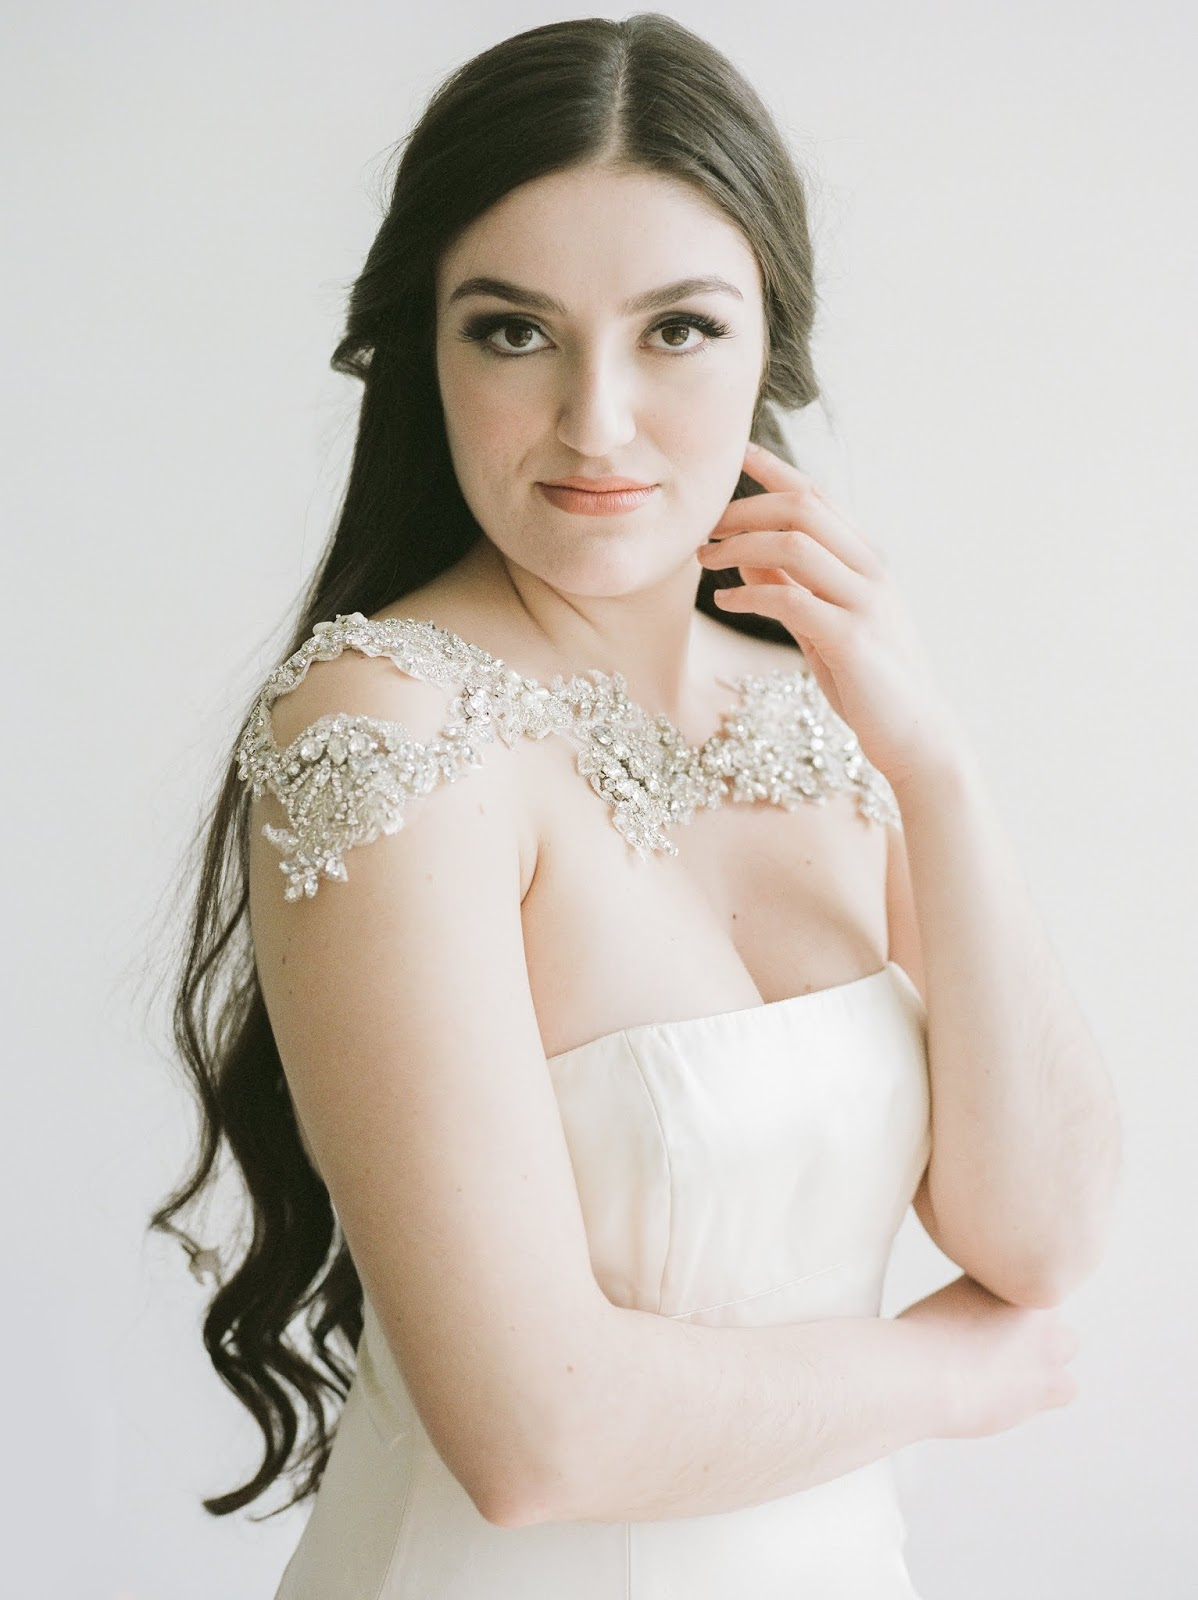 Win this beaded crystal bolero by She Wore Flowers designer, Abigail Grace Bridal! This wedding accessory is beautifully handmade and is one of many bridal accessories available from She Wore Flowers.